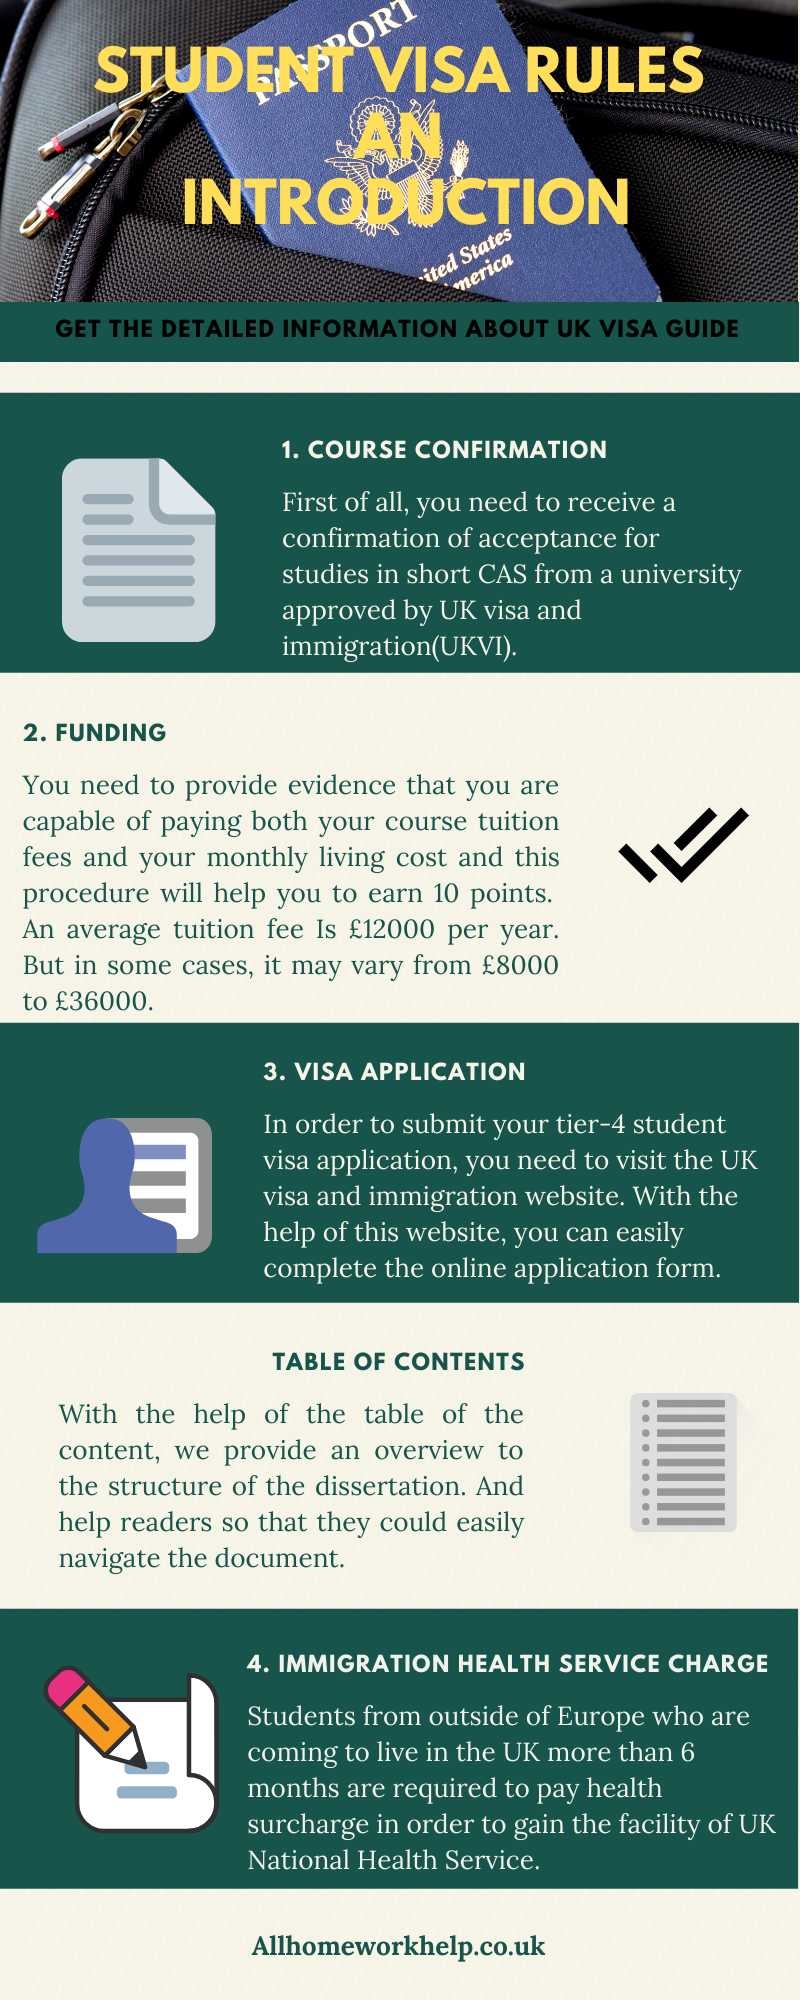 UK-VISA-GUIDE-INTRODUCTION